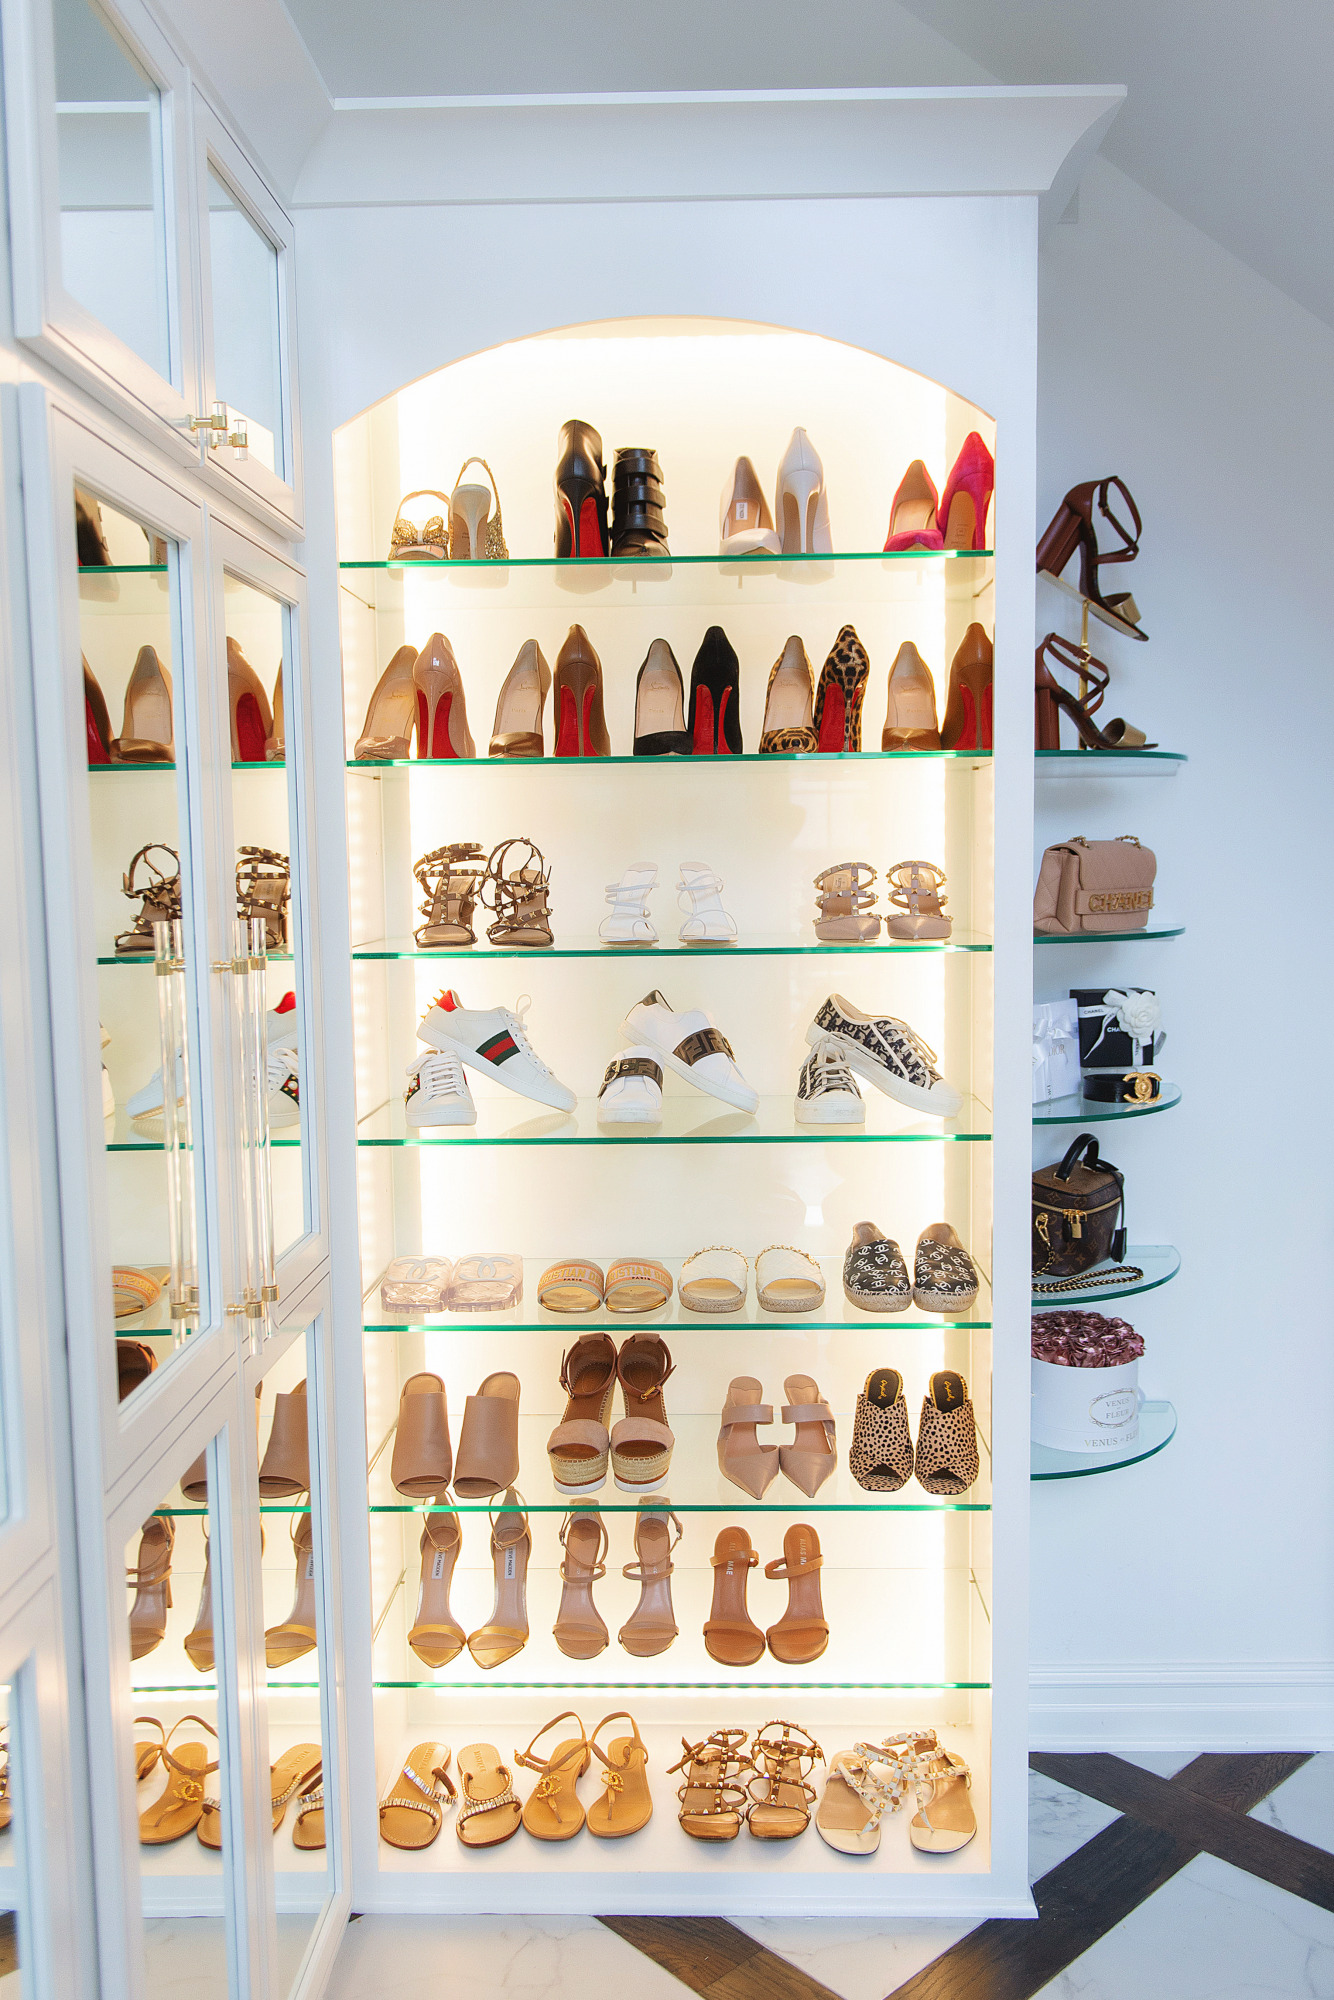 Blog Design by popular US lifestyle blog, The Sweetest Thing: image of a shoe display filled with Christian Louboutain heels, Steve Madden heels, and other designer shoes.